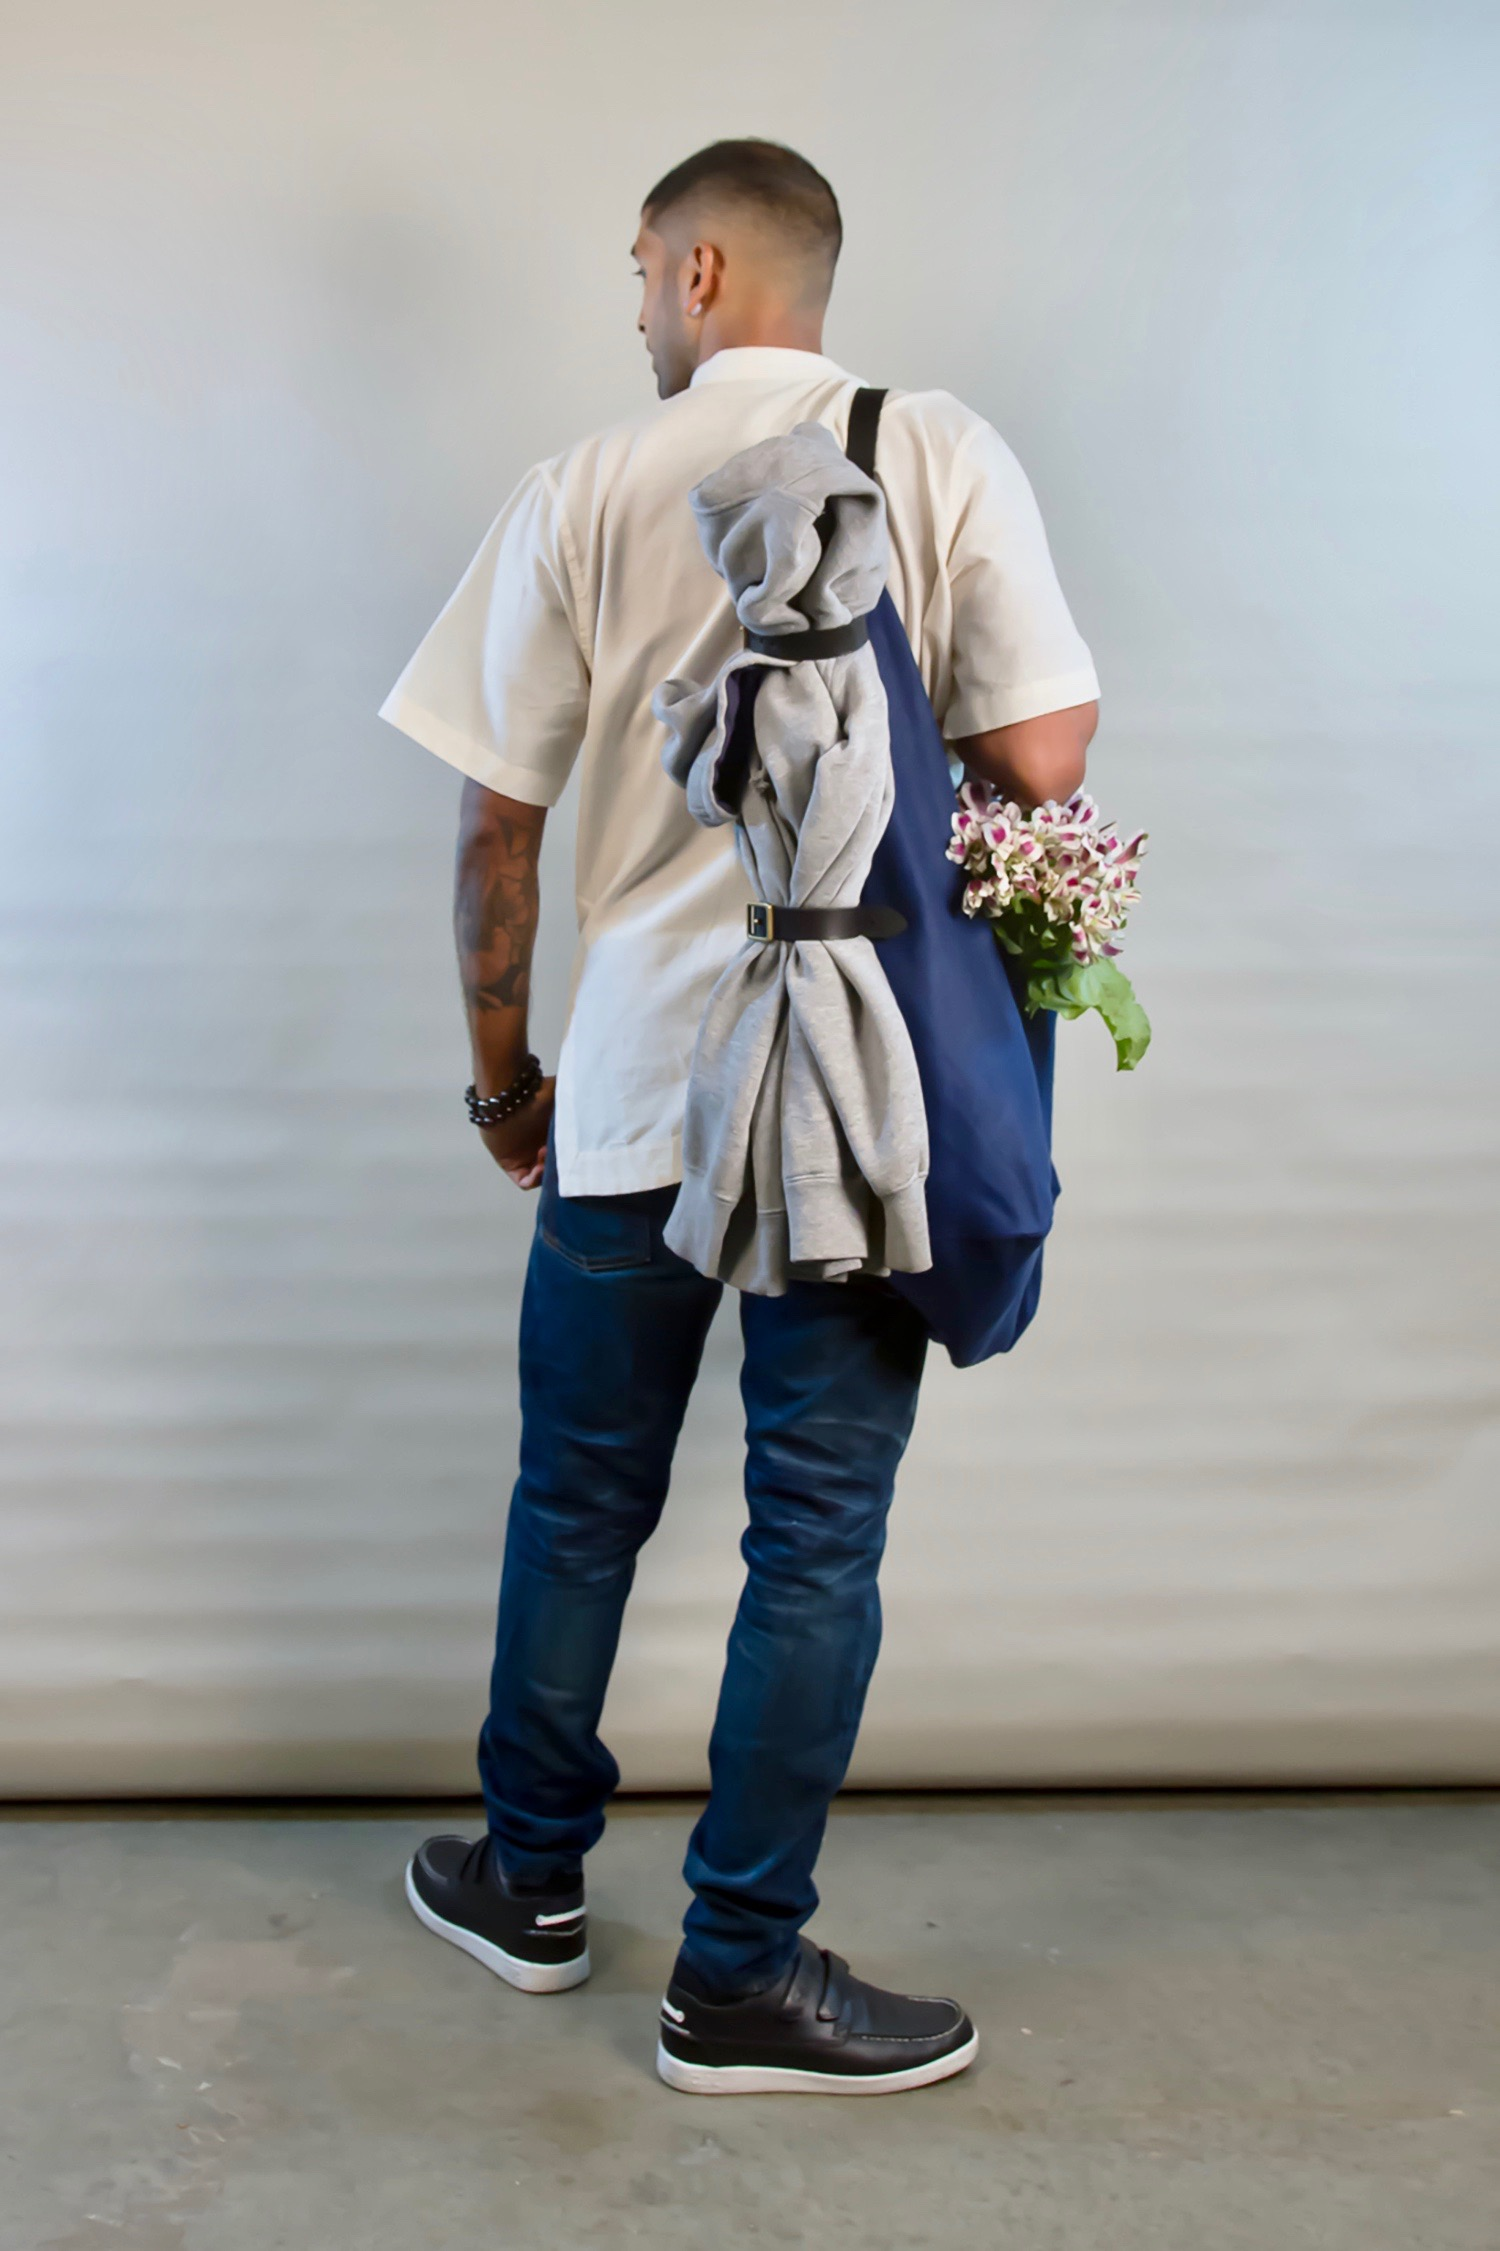 - LARGE LINEN BAG IN INDIGO W/ ORIGINAL HANDLE IN BLACK & 'NOT JUST A BLANKET CARRIER' IN BLACK